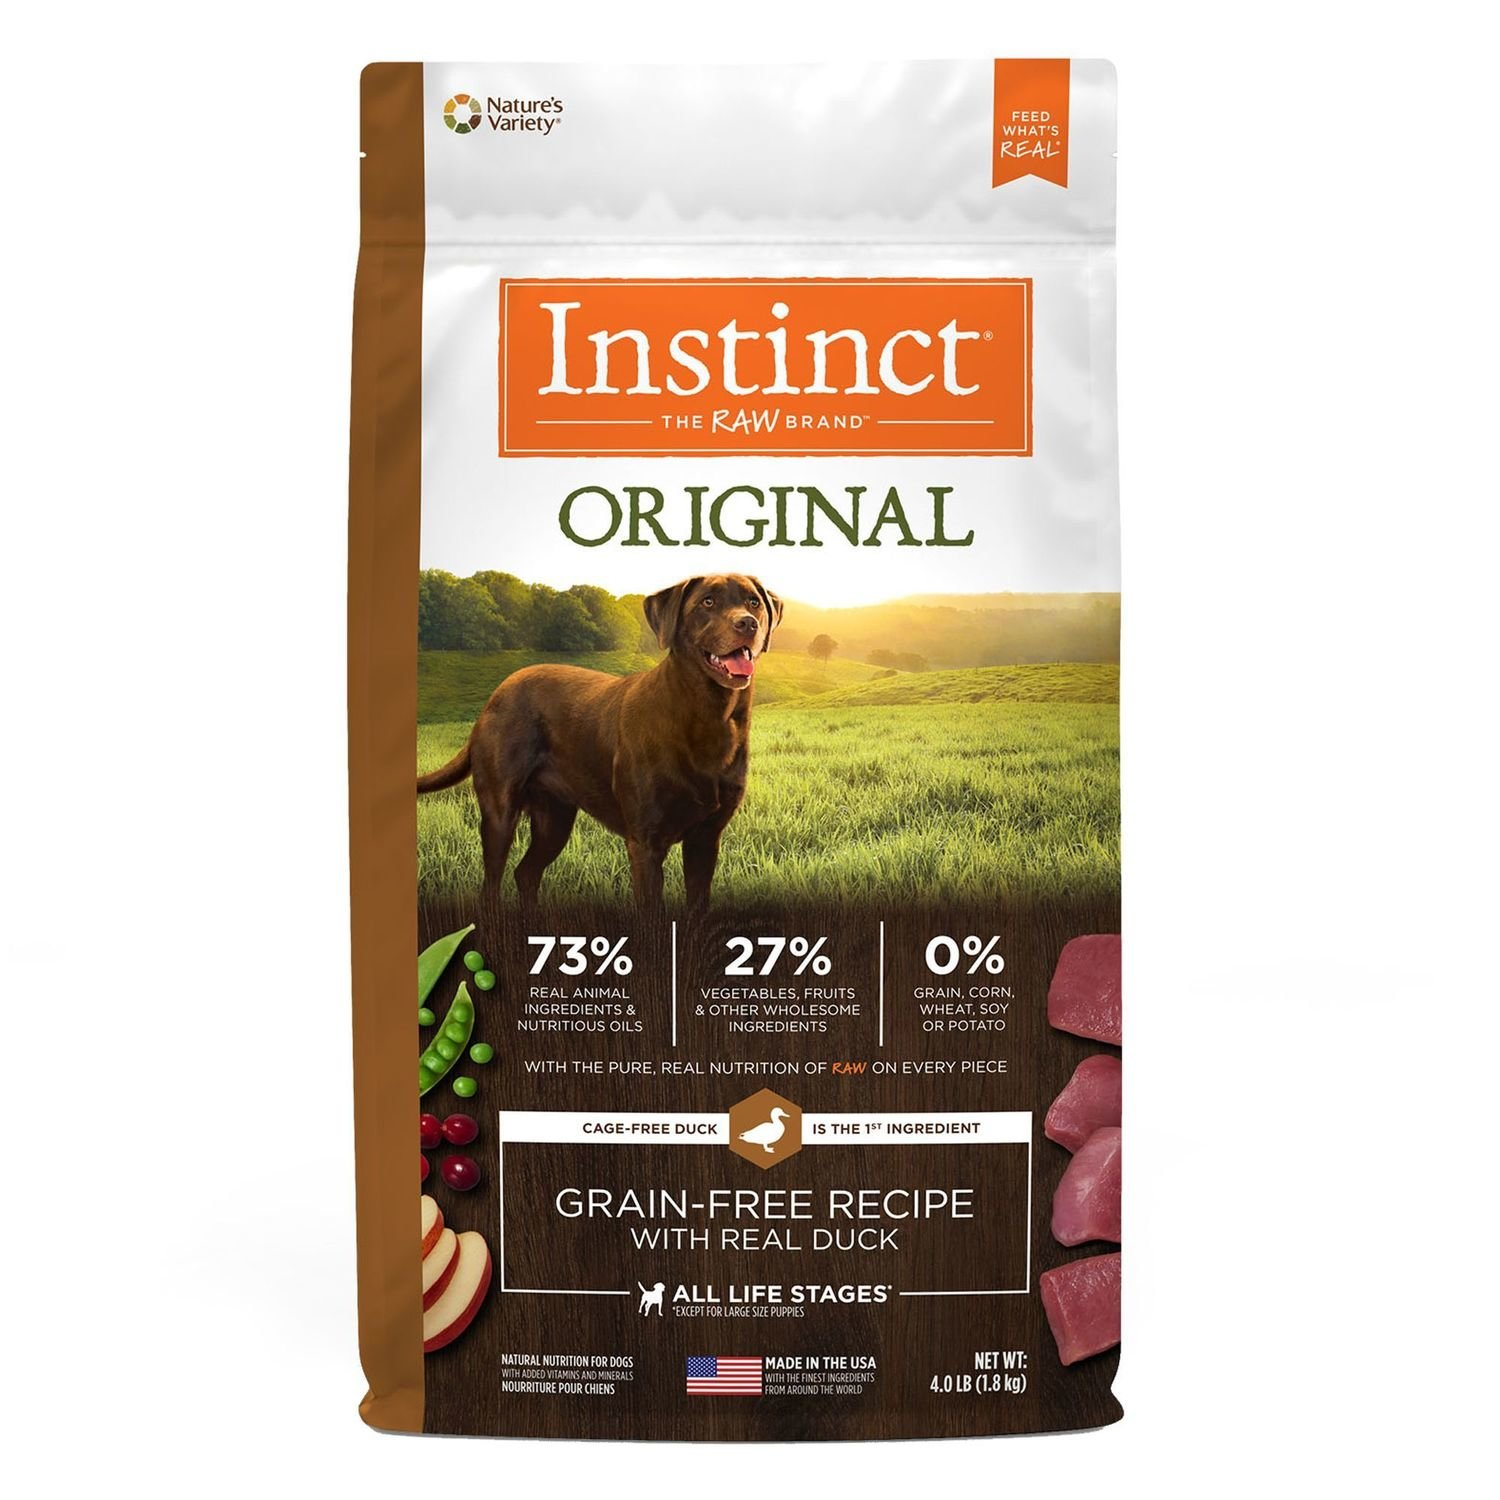 Nature's Variety Instinct Original Dog Food - Natural Grain Free Raw Duck size: 4 Lb Kibble (12/18) (A.H3)